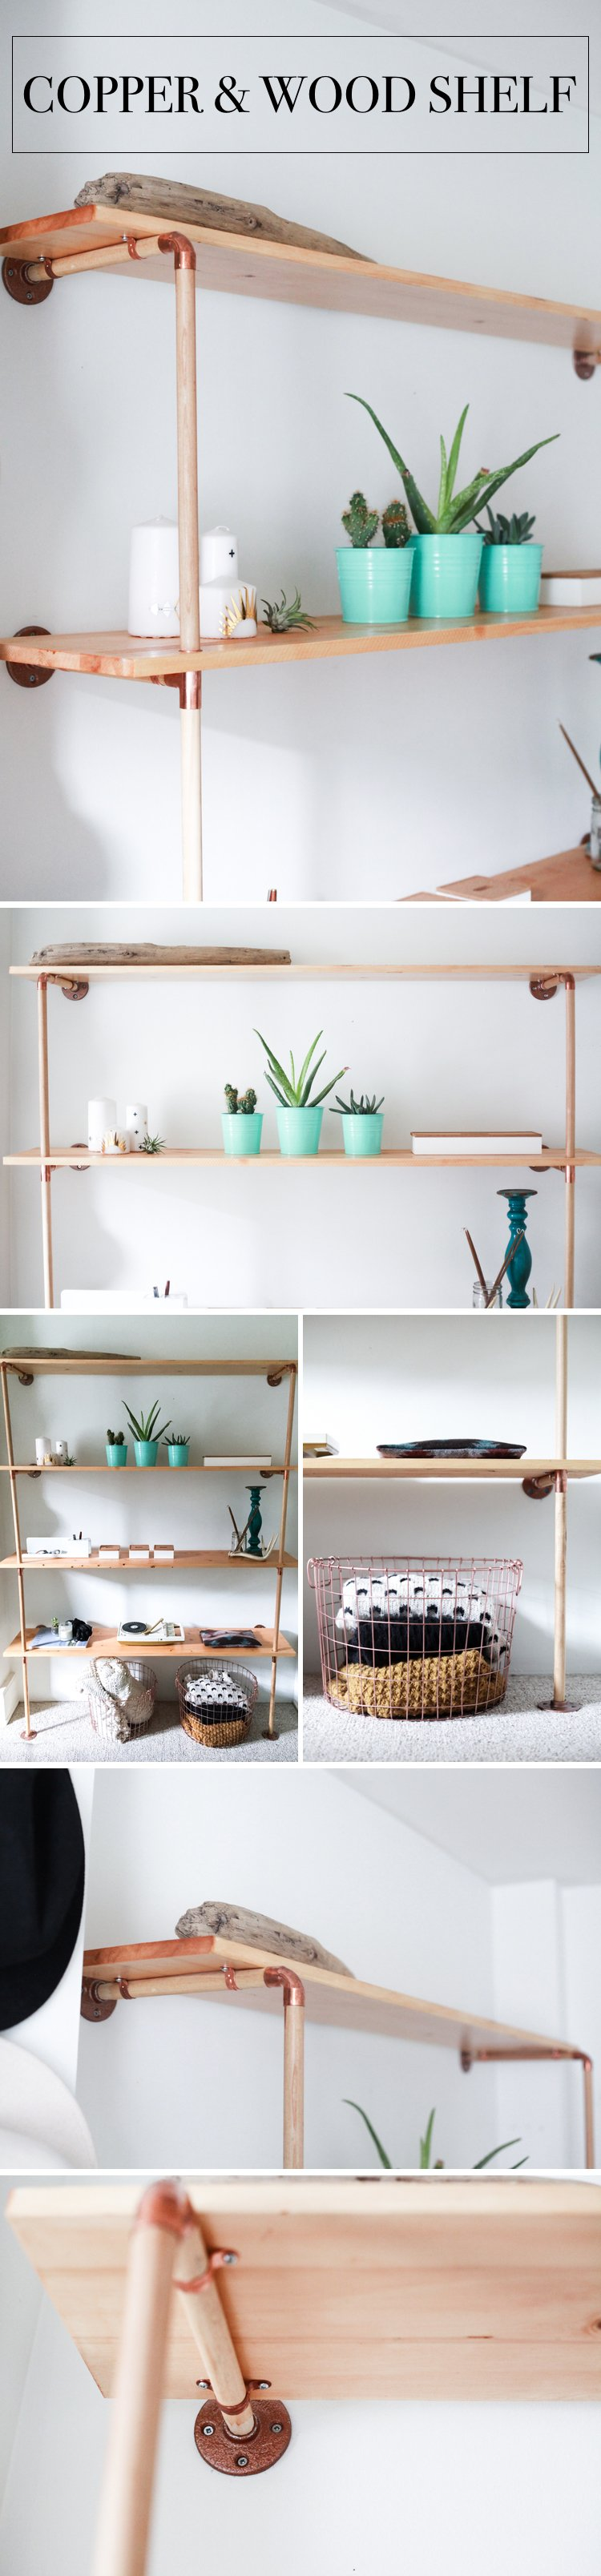 Copper and Wood Shelves